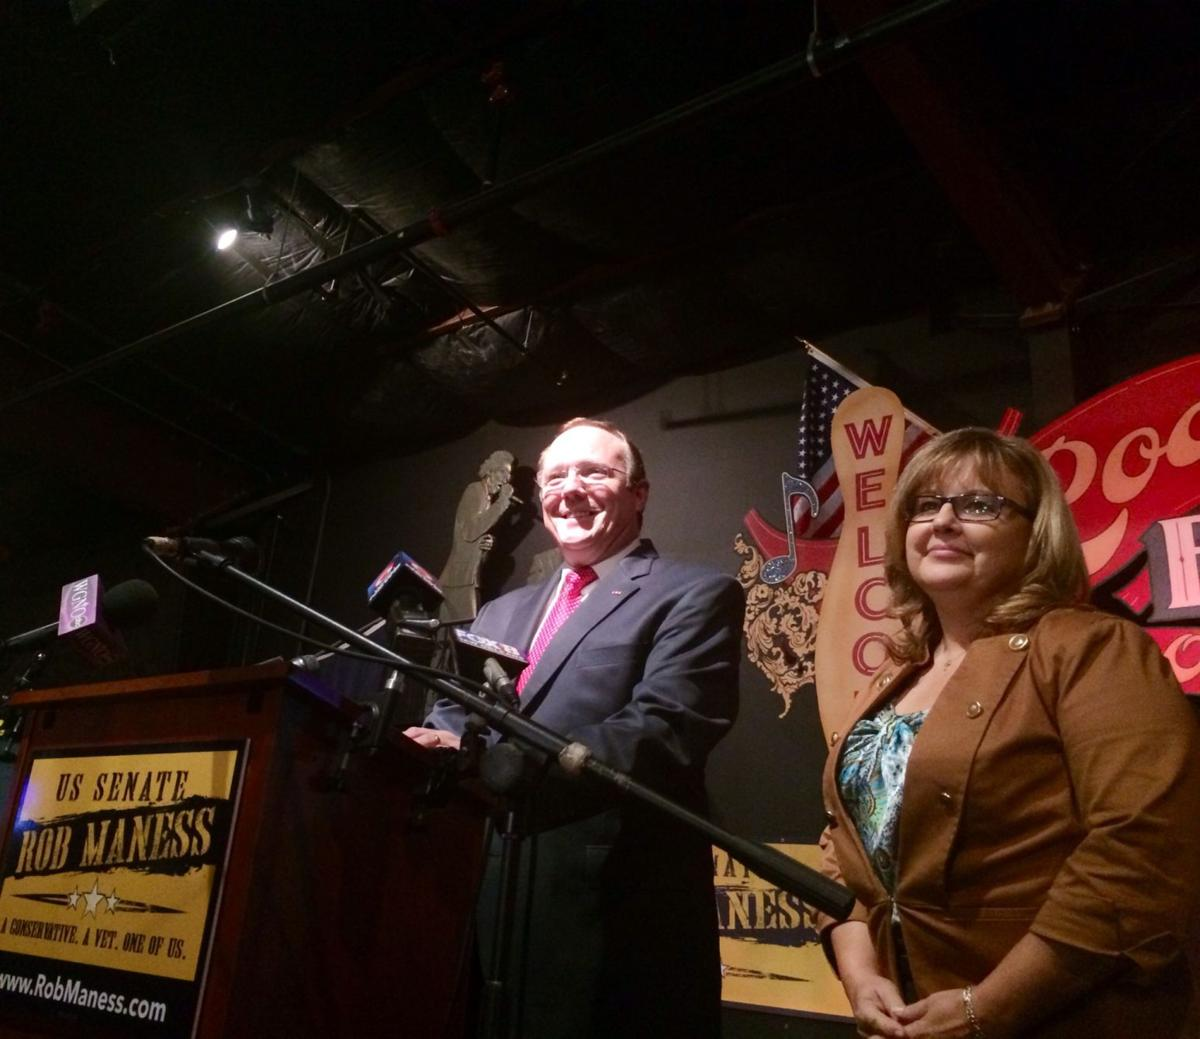 Rob Maness supports Cassidy in runoff_lowres